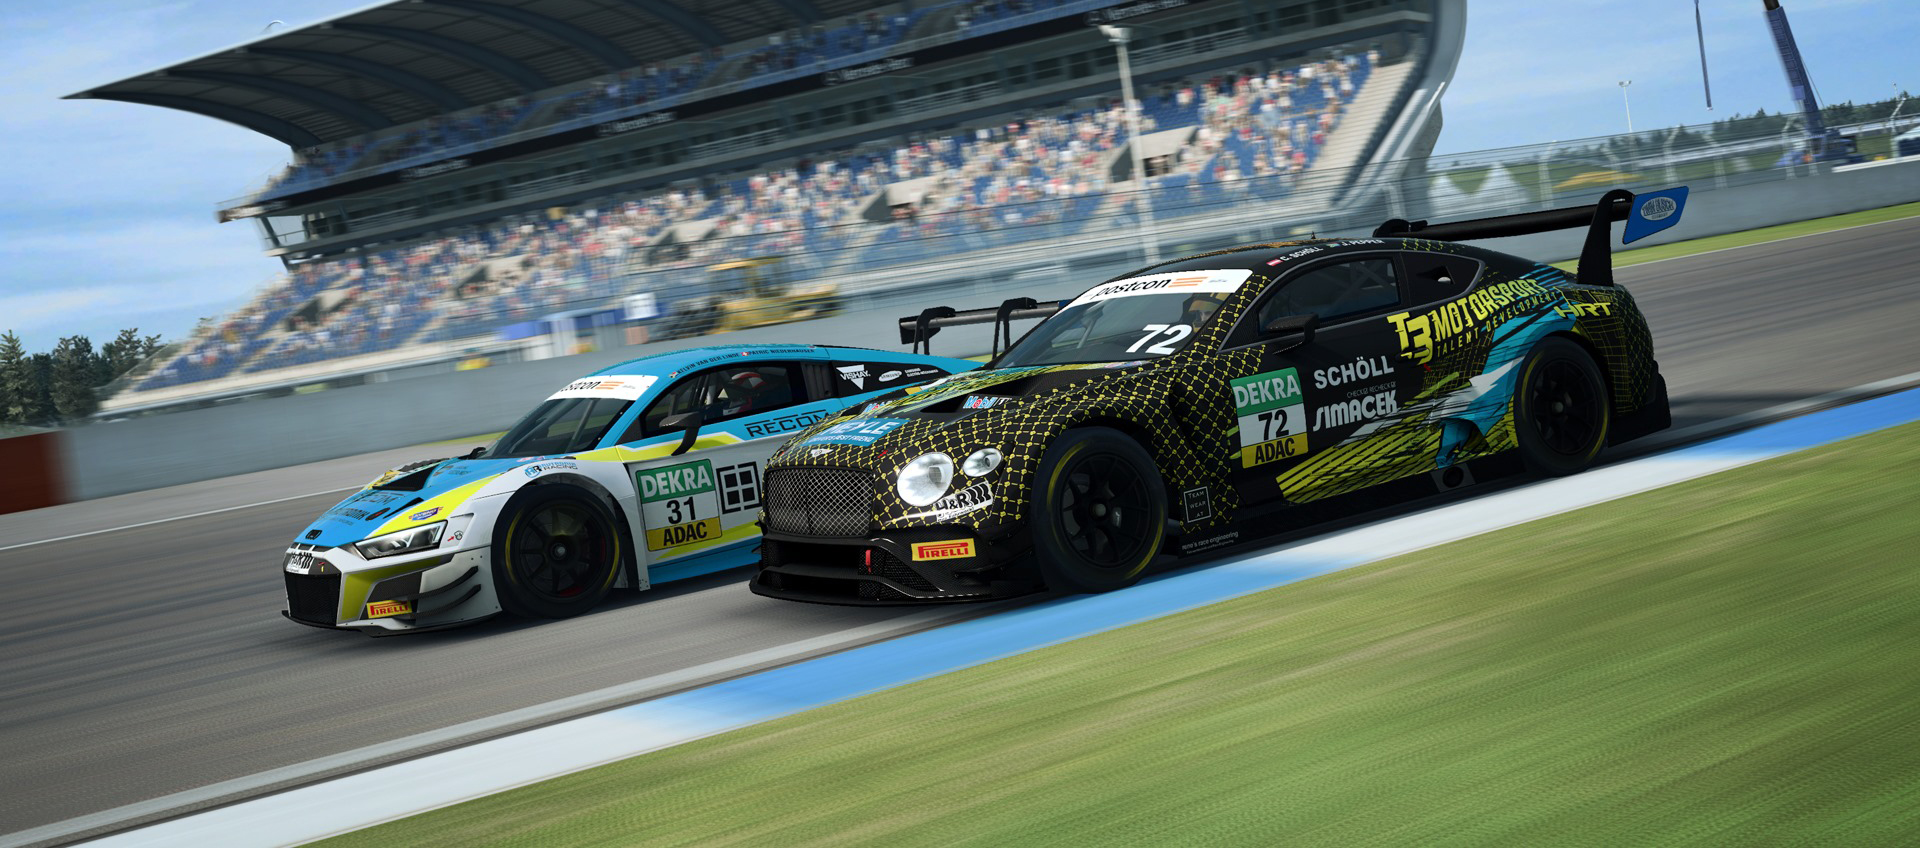 Raceroom Client v0.9.2.36 Now Available With BOP Updates